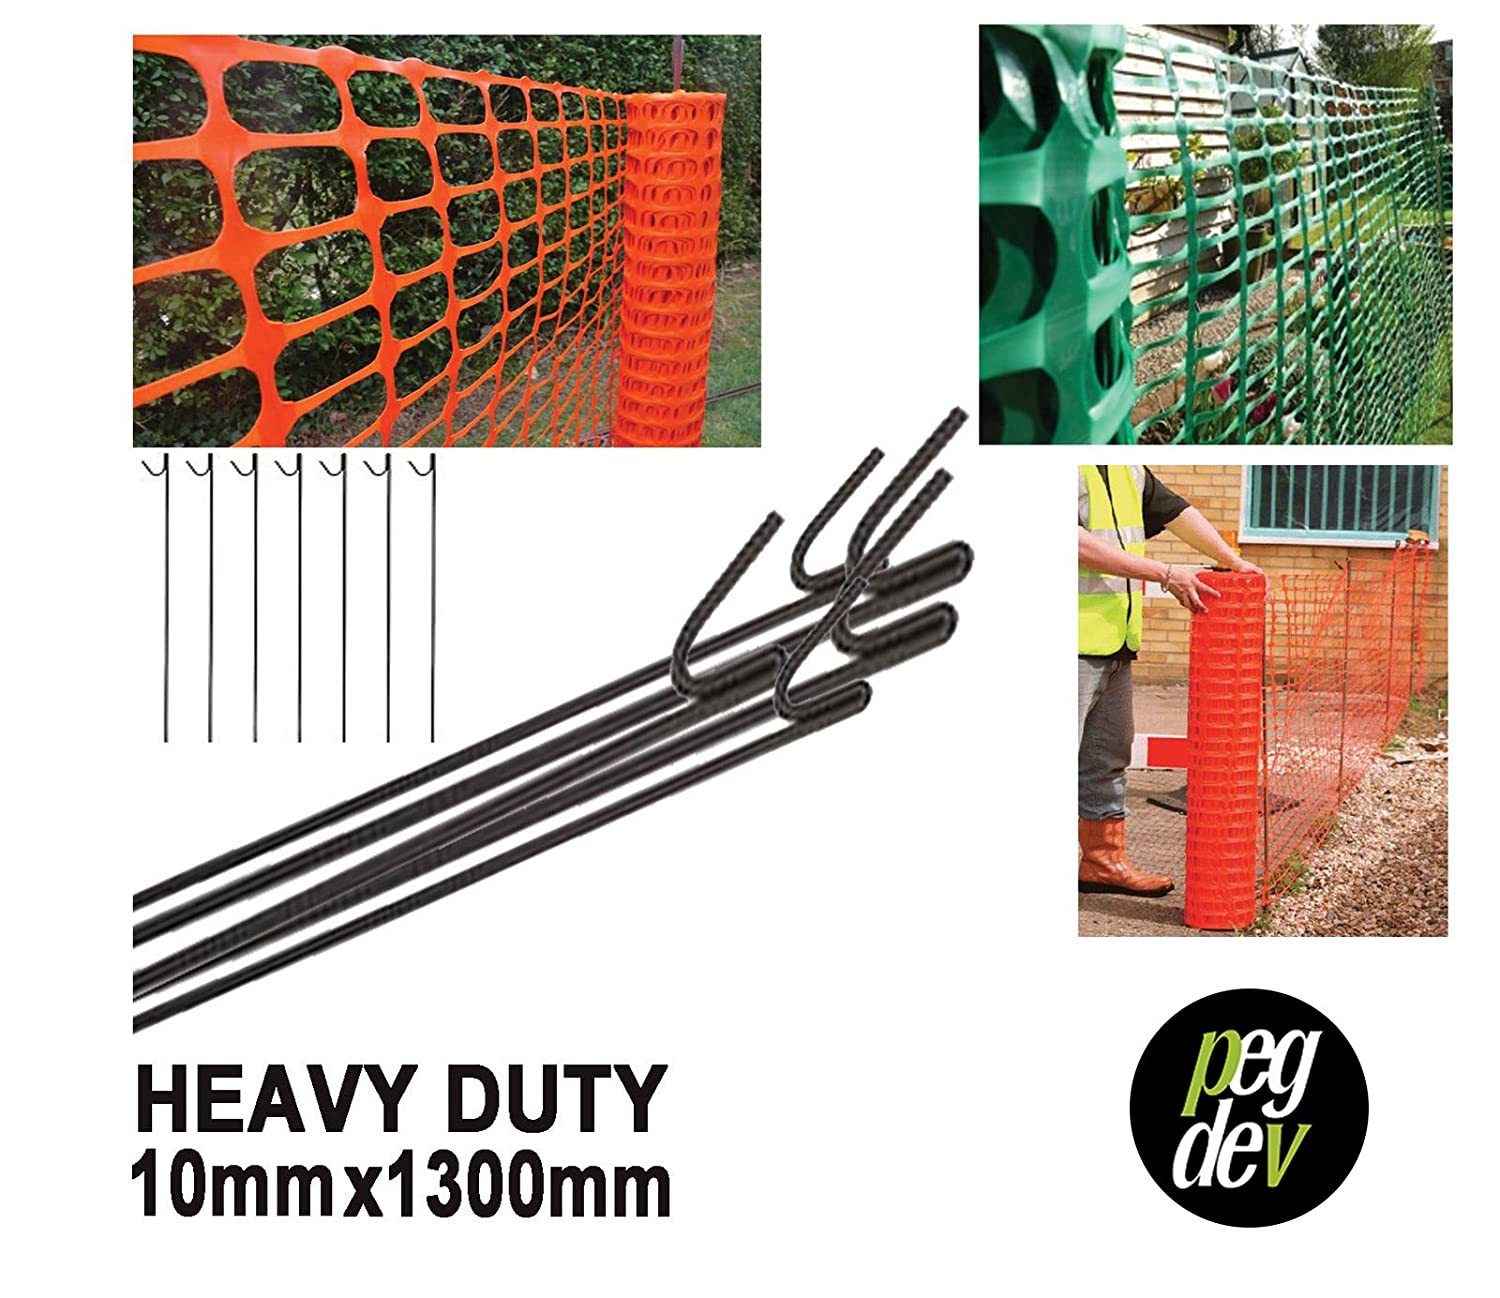 Metal Fencing PINS 10mm Steel Barrier Fence Stakes Event Road PIN 1300mm (15 PINS) PDL